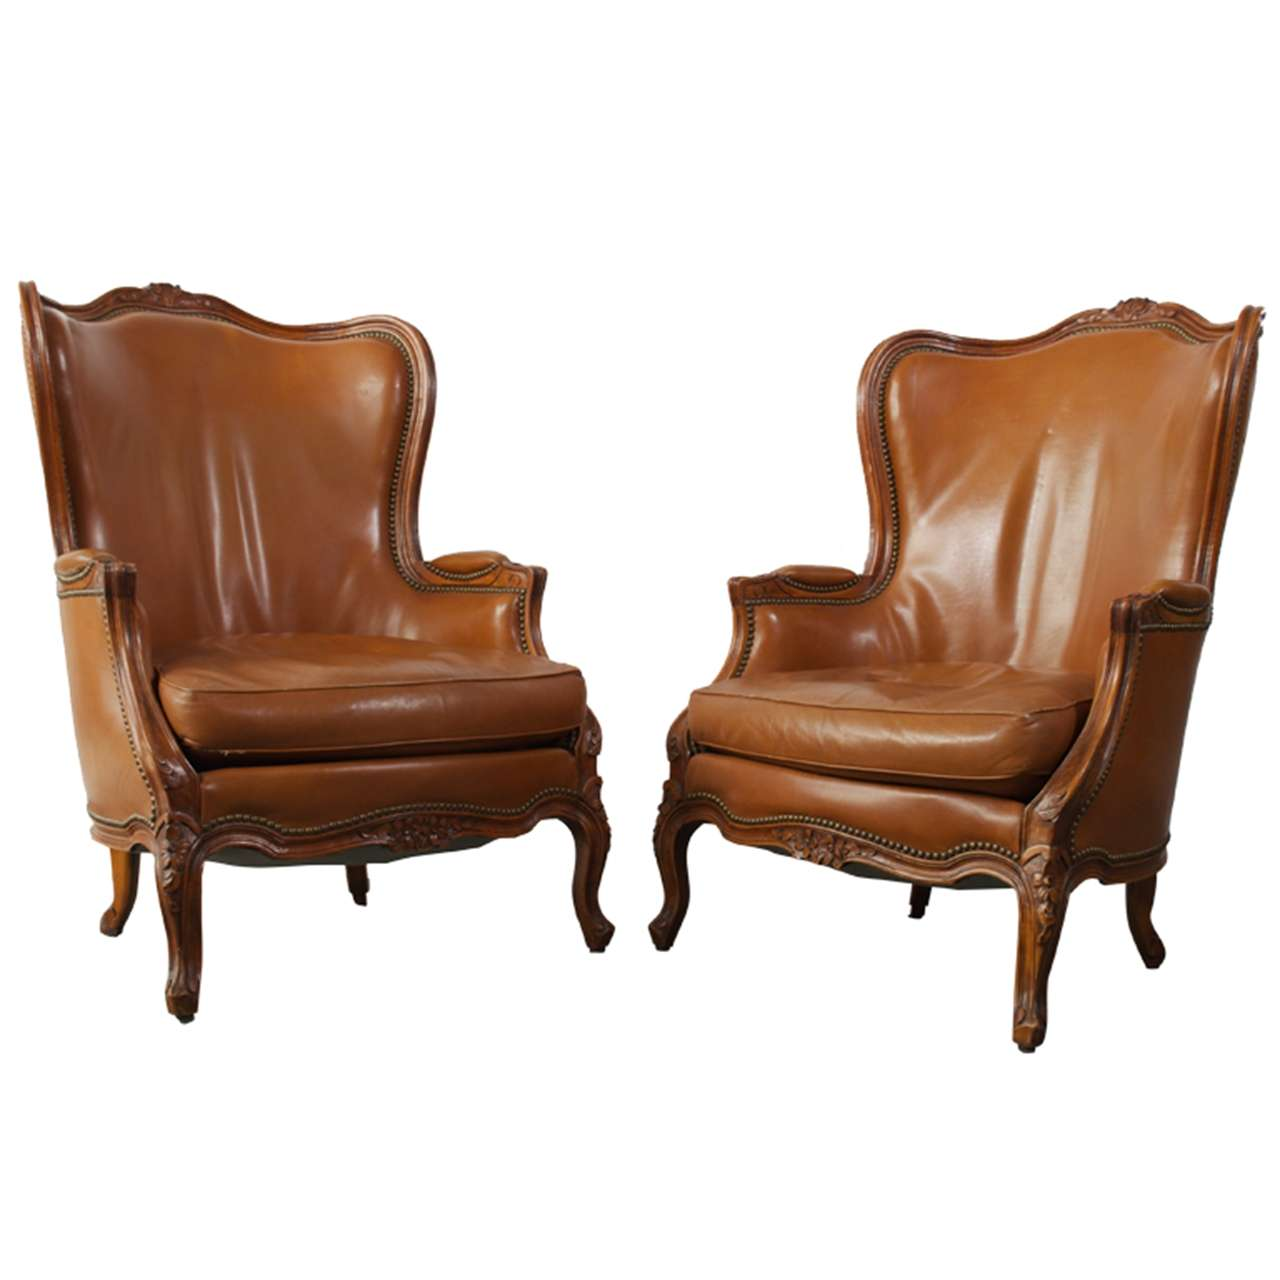 bergere chairs glider rocker chair big lots louis 15th style at 1stdibs